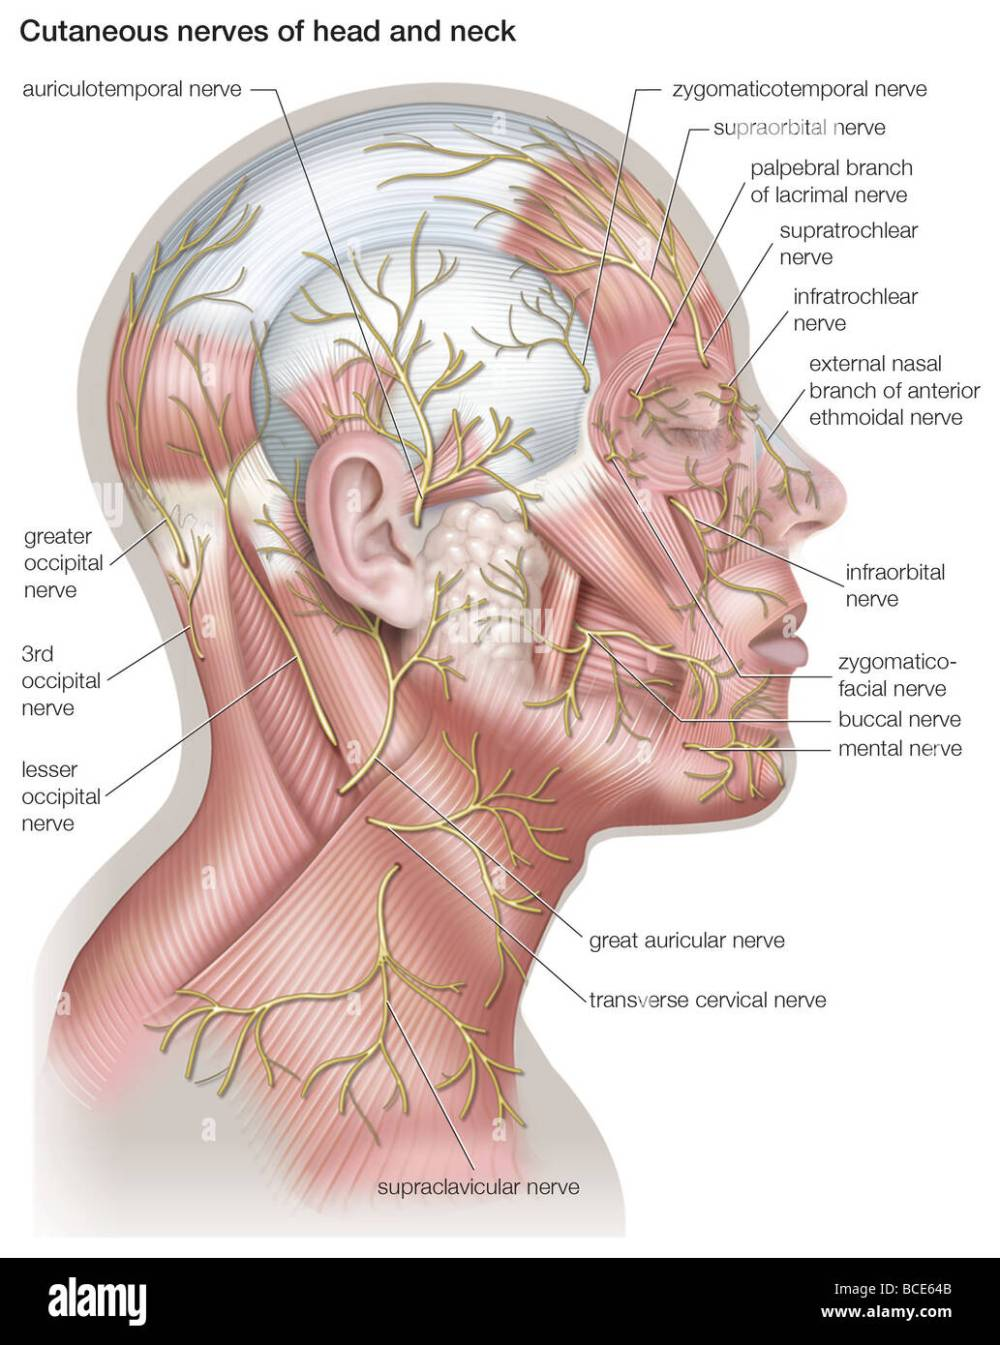 medium resolution of diagram of the cutaneous nerves of the head and neck